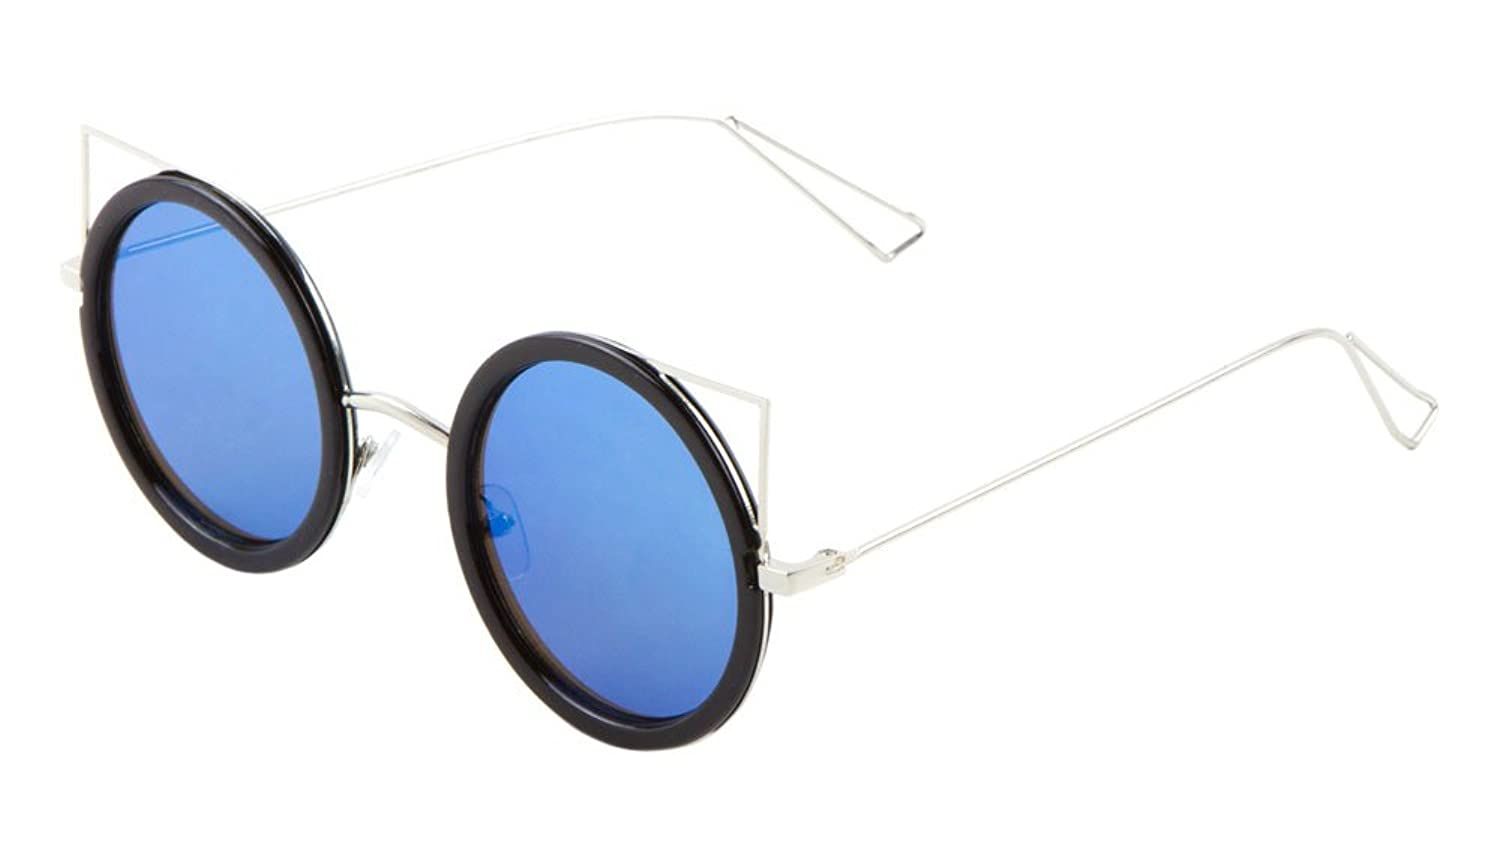 Sunglasses Luxe. Metal Round Cat Eye Sunglasses. (BLACK BLUE)